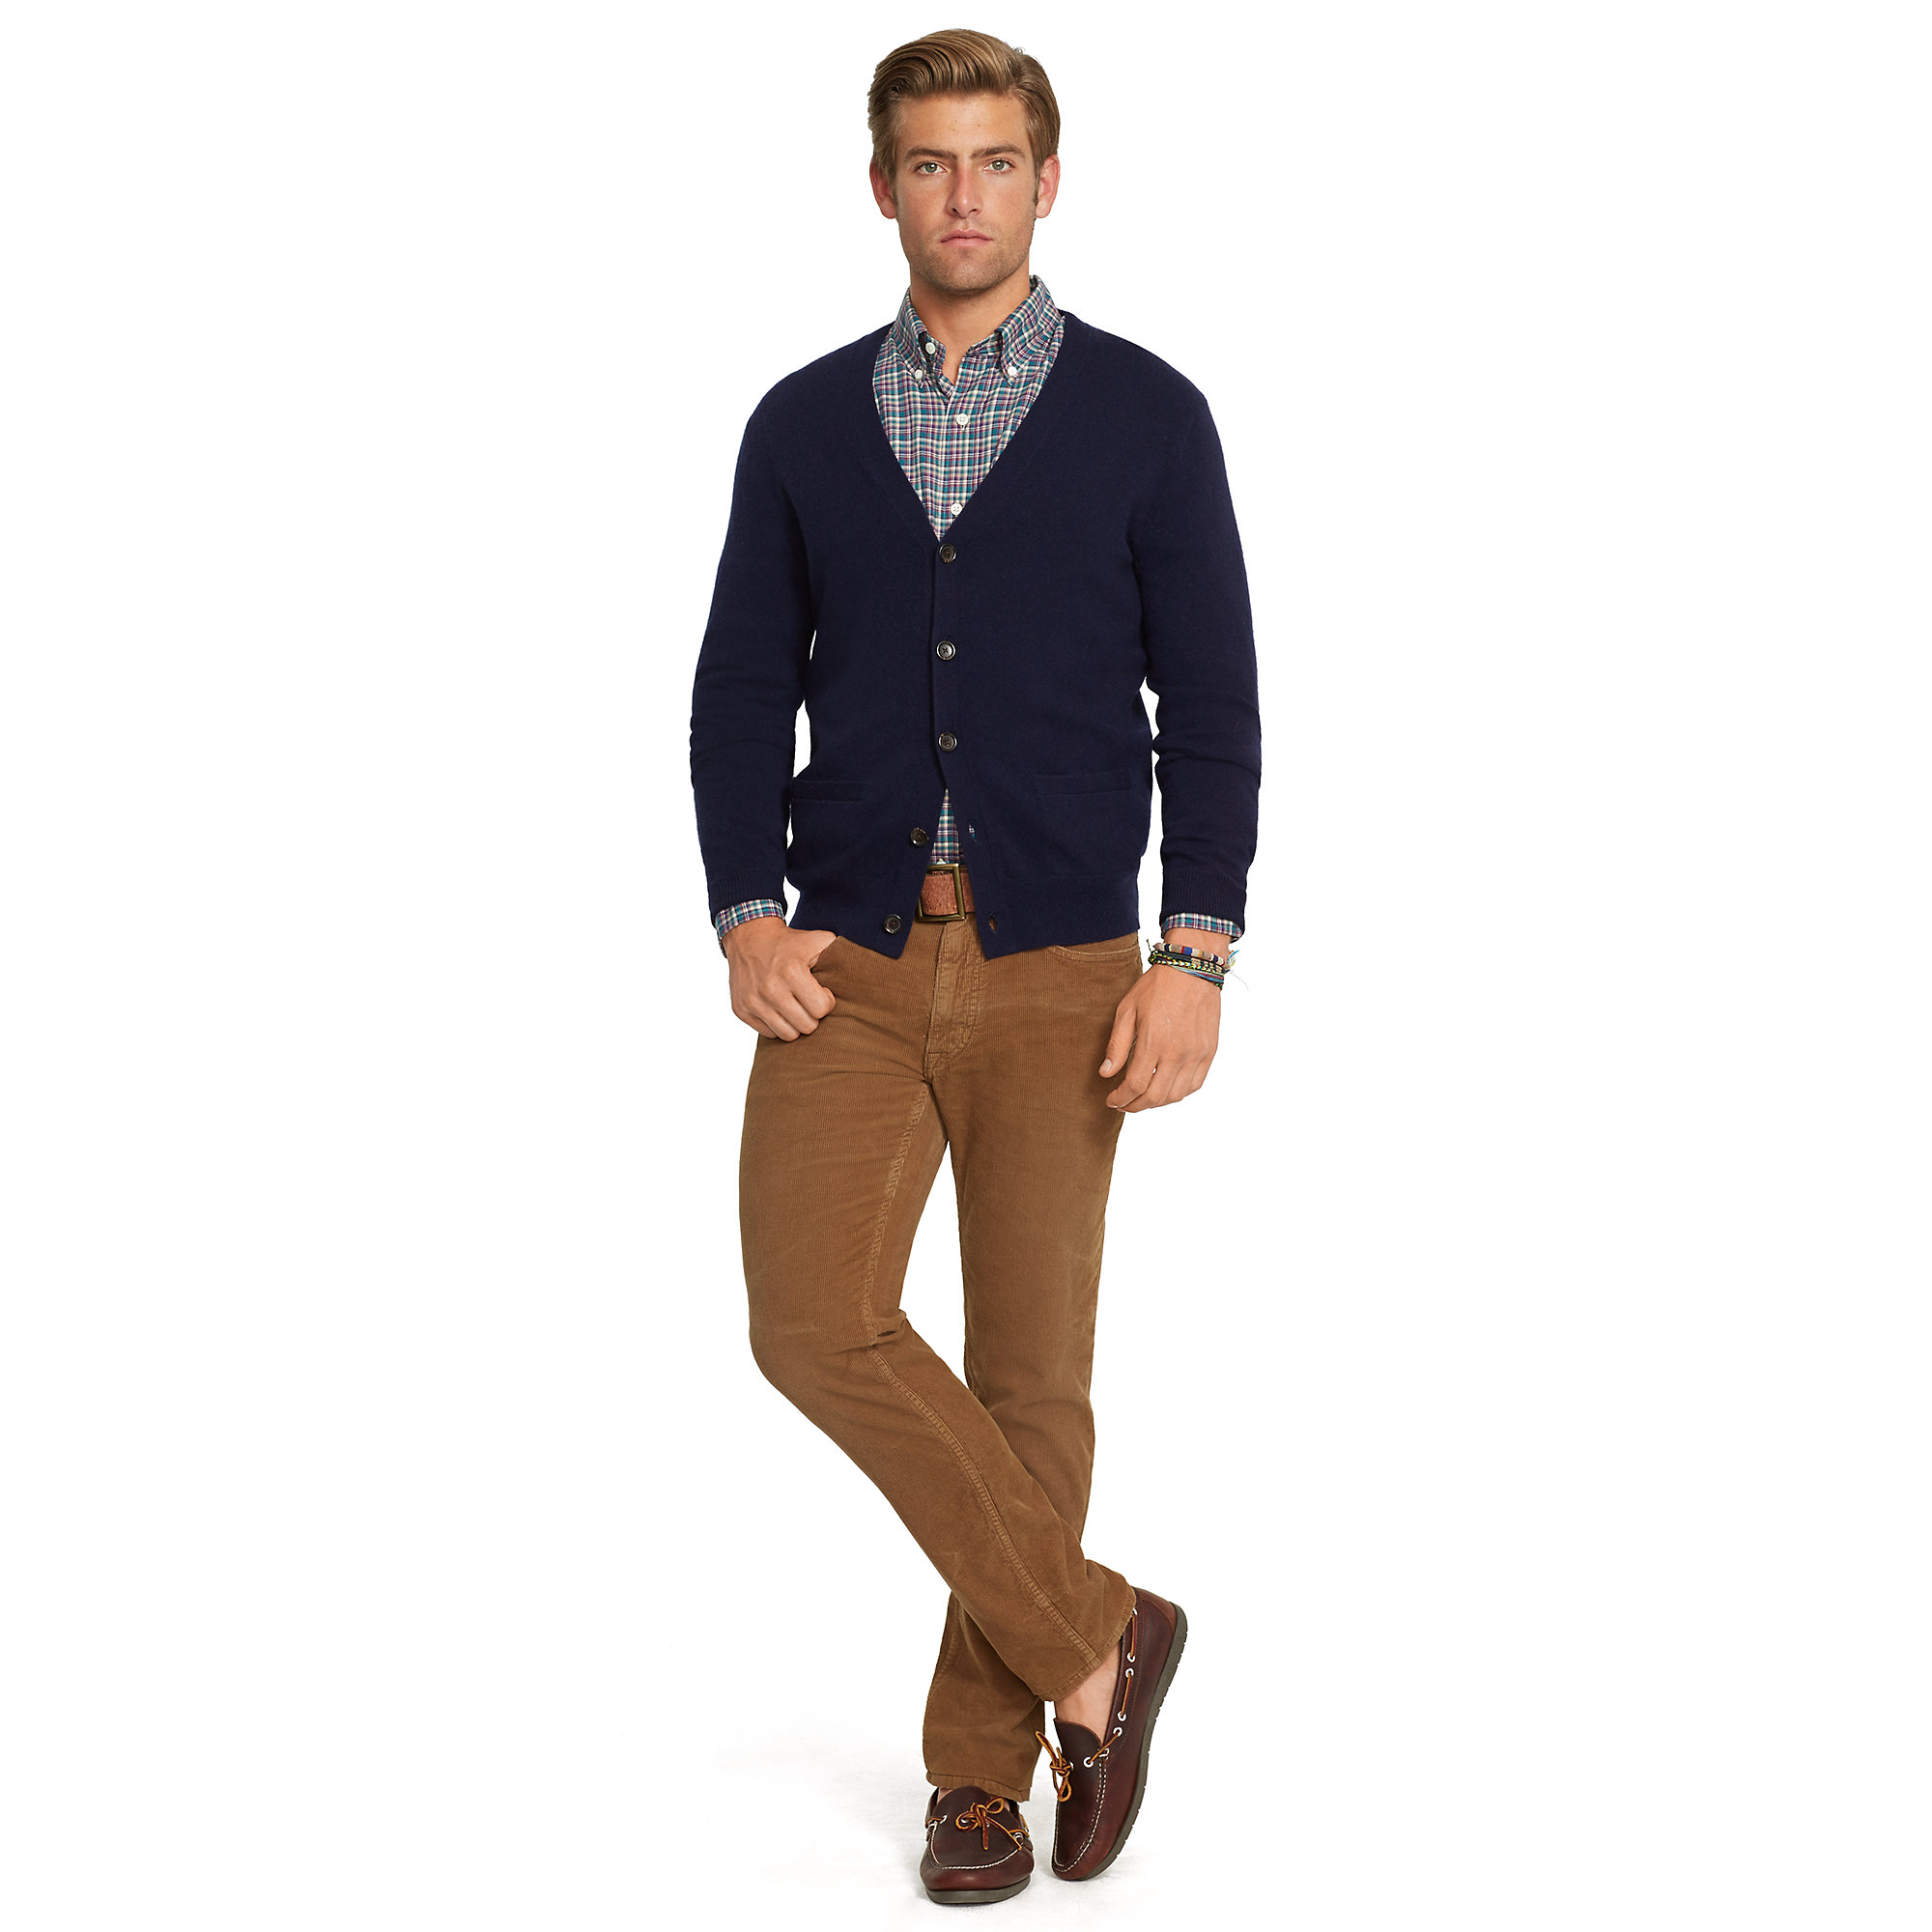 Ralph Lauren Cashmere V Neck Cardigan In Blue For Men Lyst